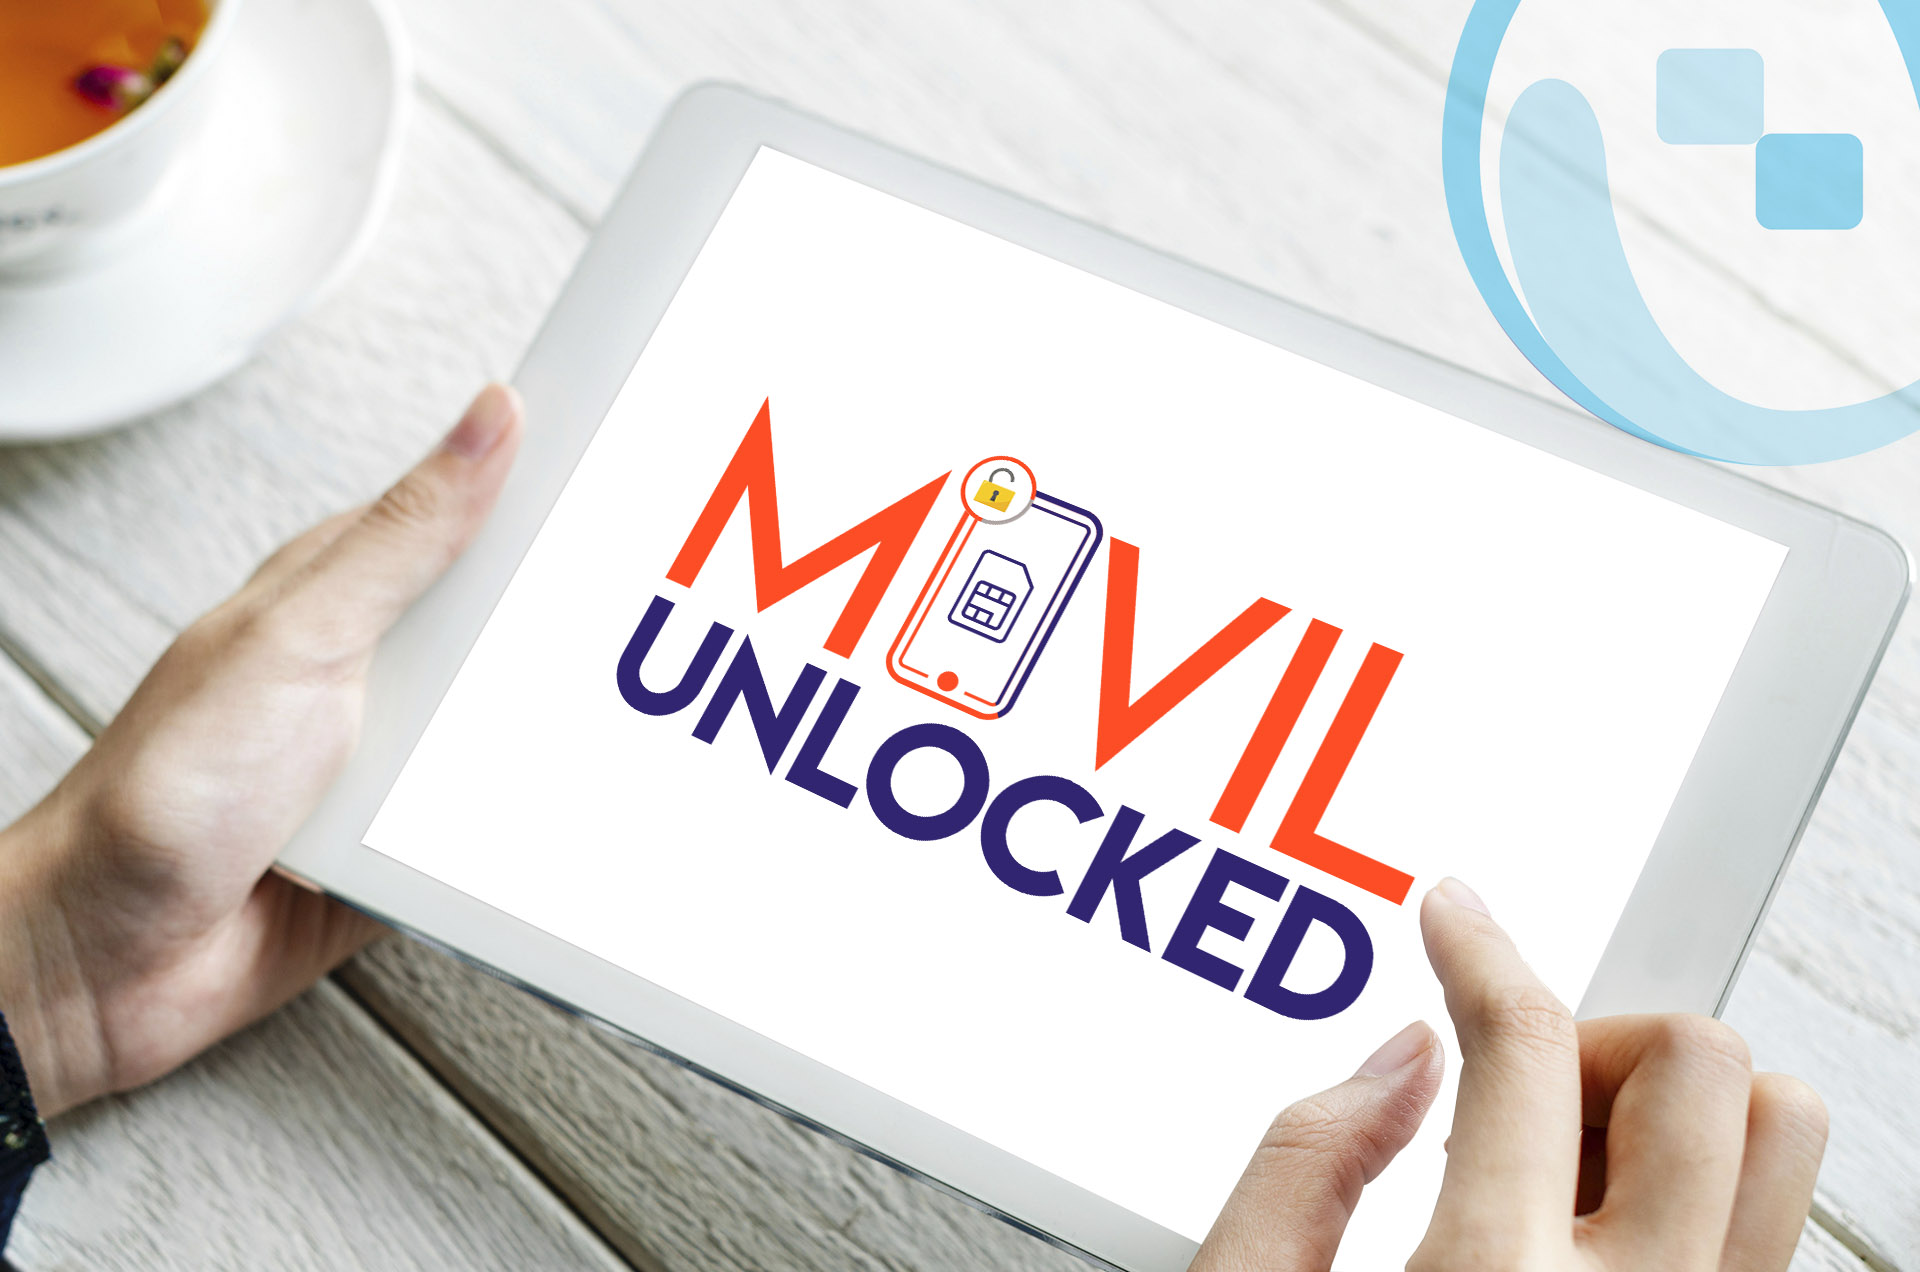 LOGO MOVIL UNLOCKED